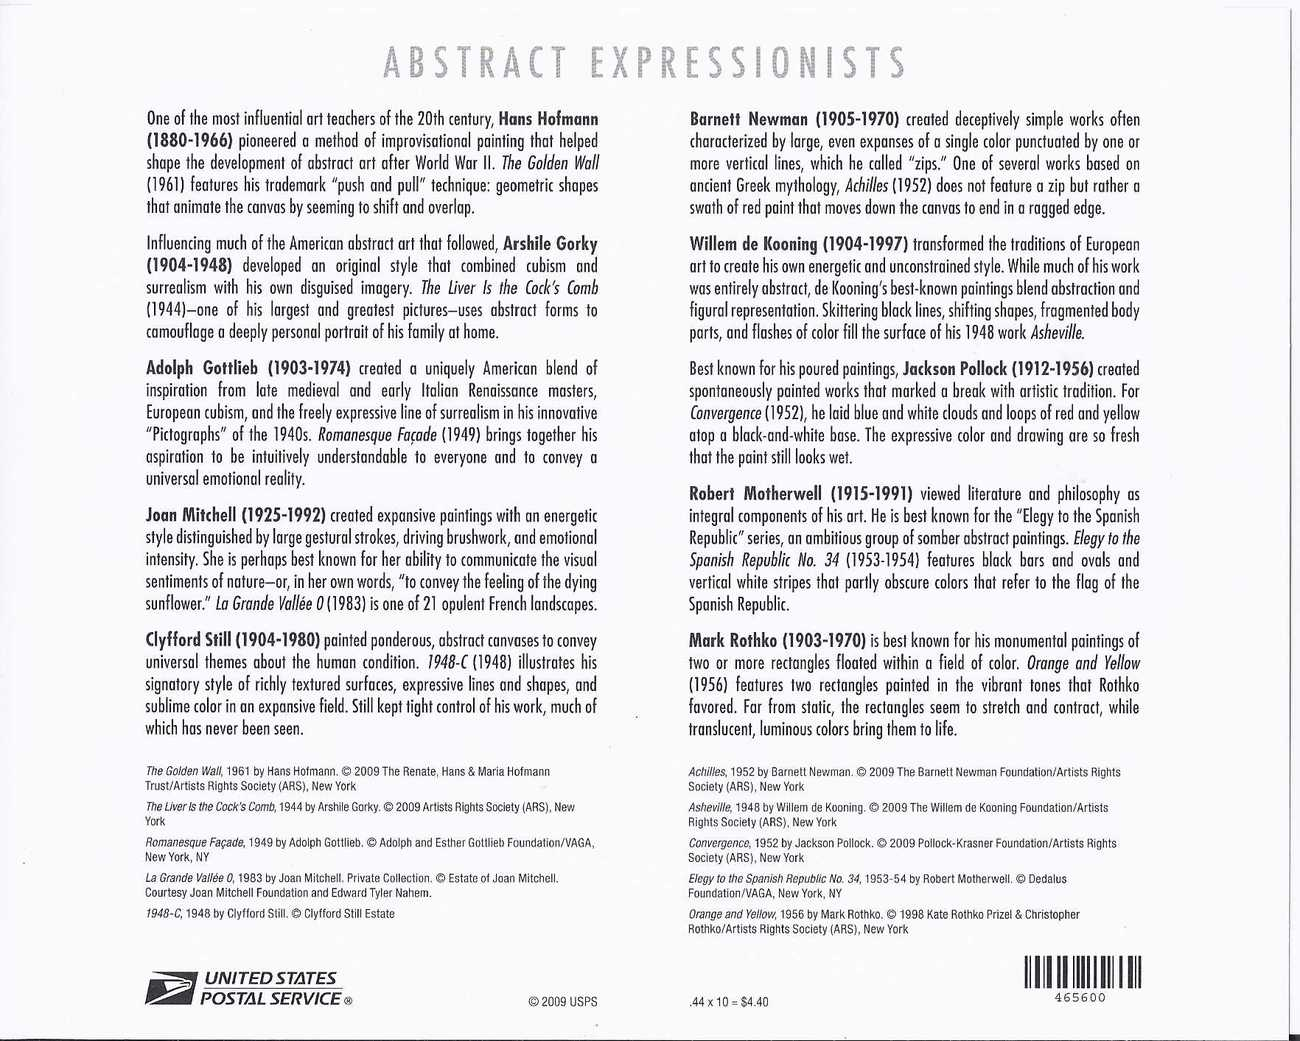 ABSTRACT EXPRESSIONISTS 2010 S/SHEET of 10 - US MINT .44cts Stamps